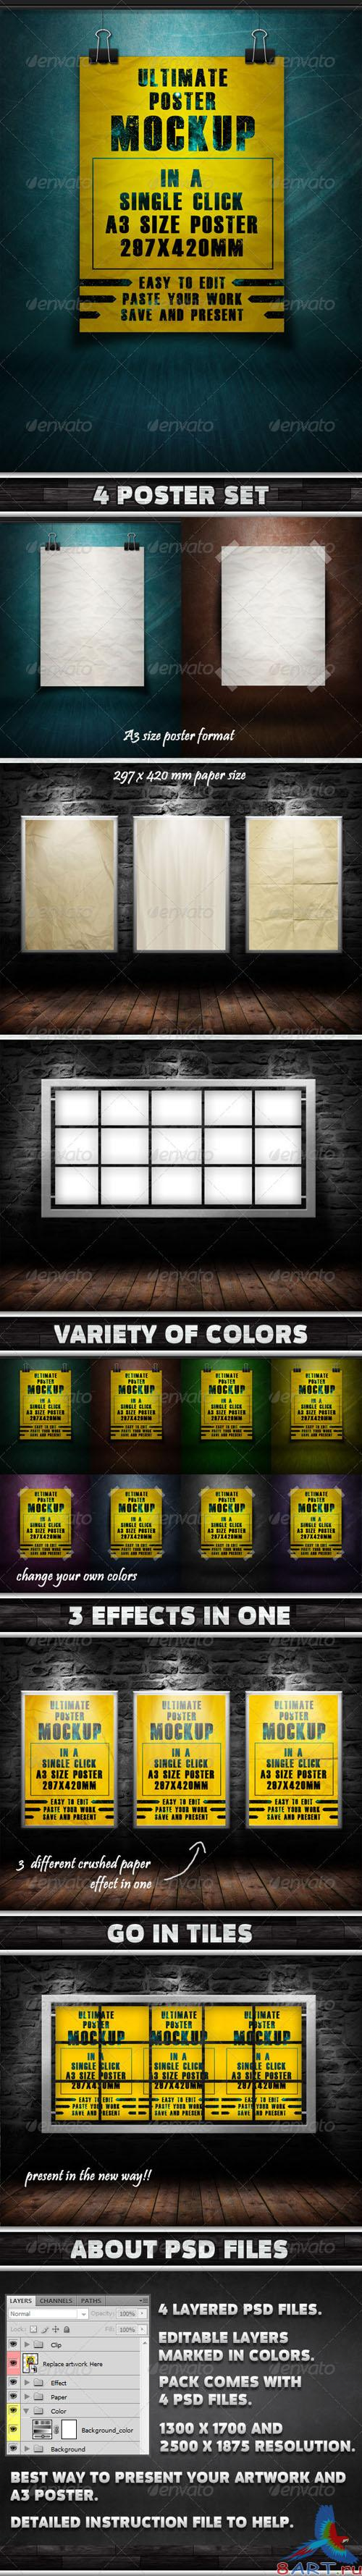 GraphicRiver - Ultimate Poster Mockup Pack -1 - 1332986